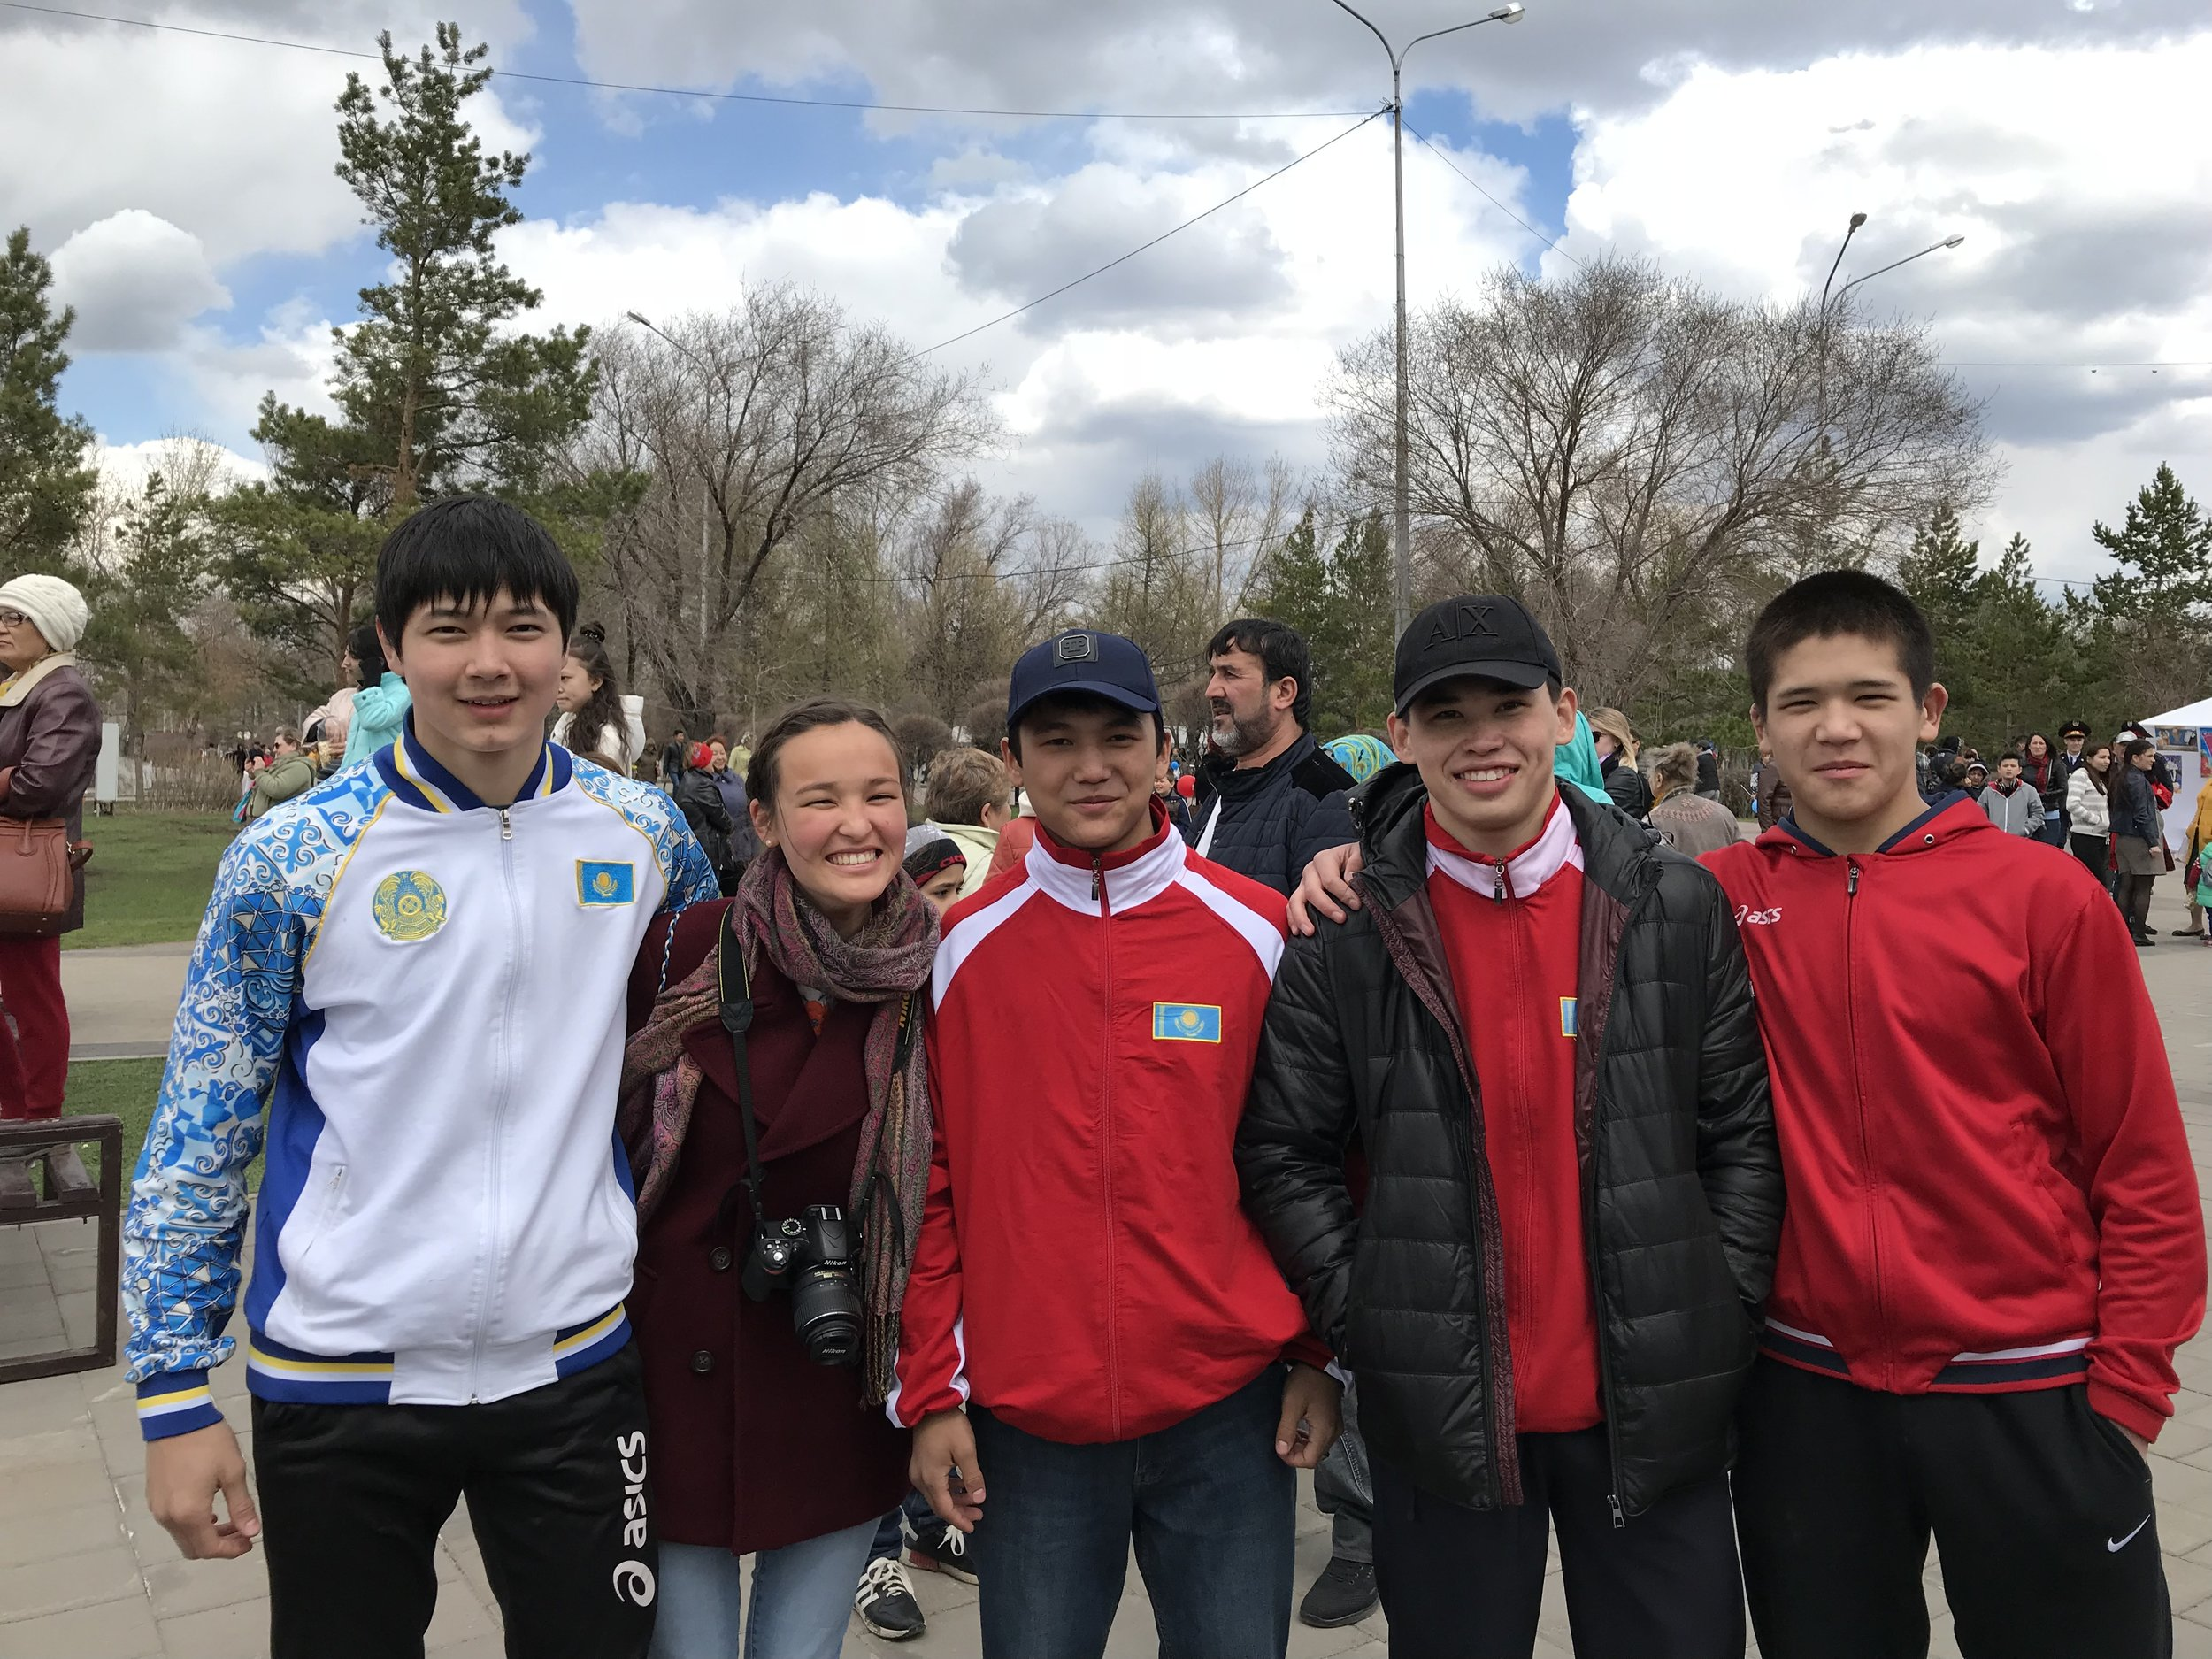 Picture with Kazakh people, they are so nice!